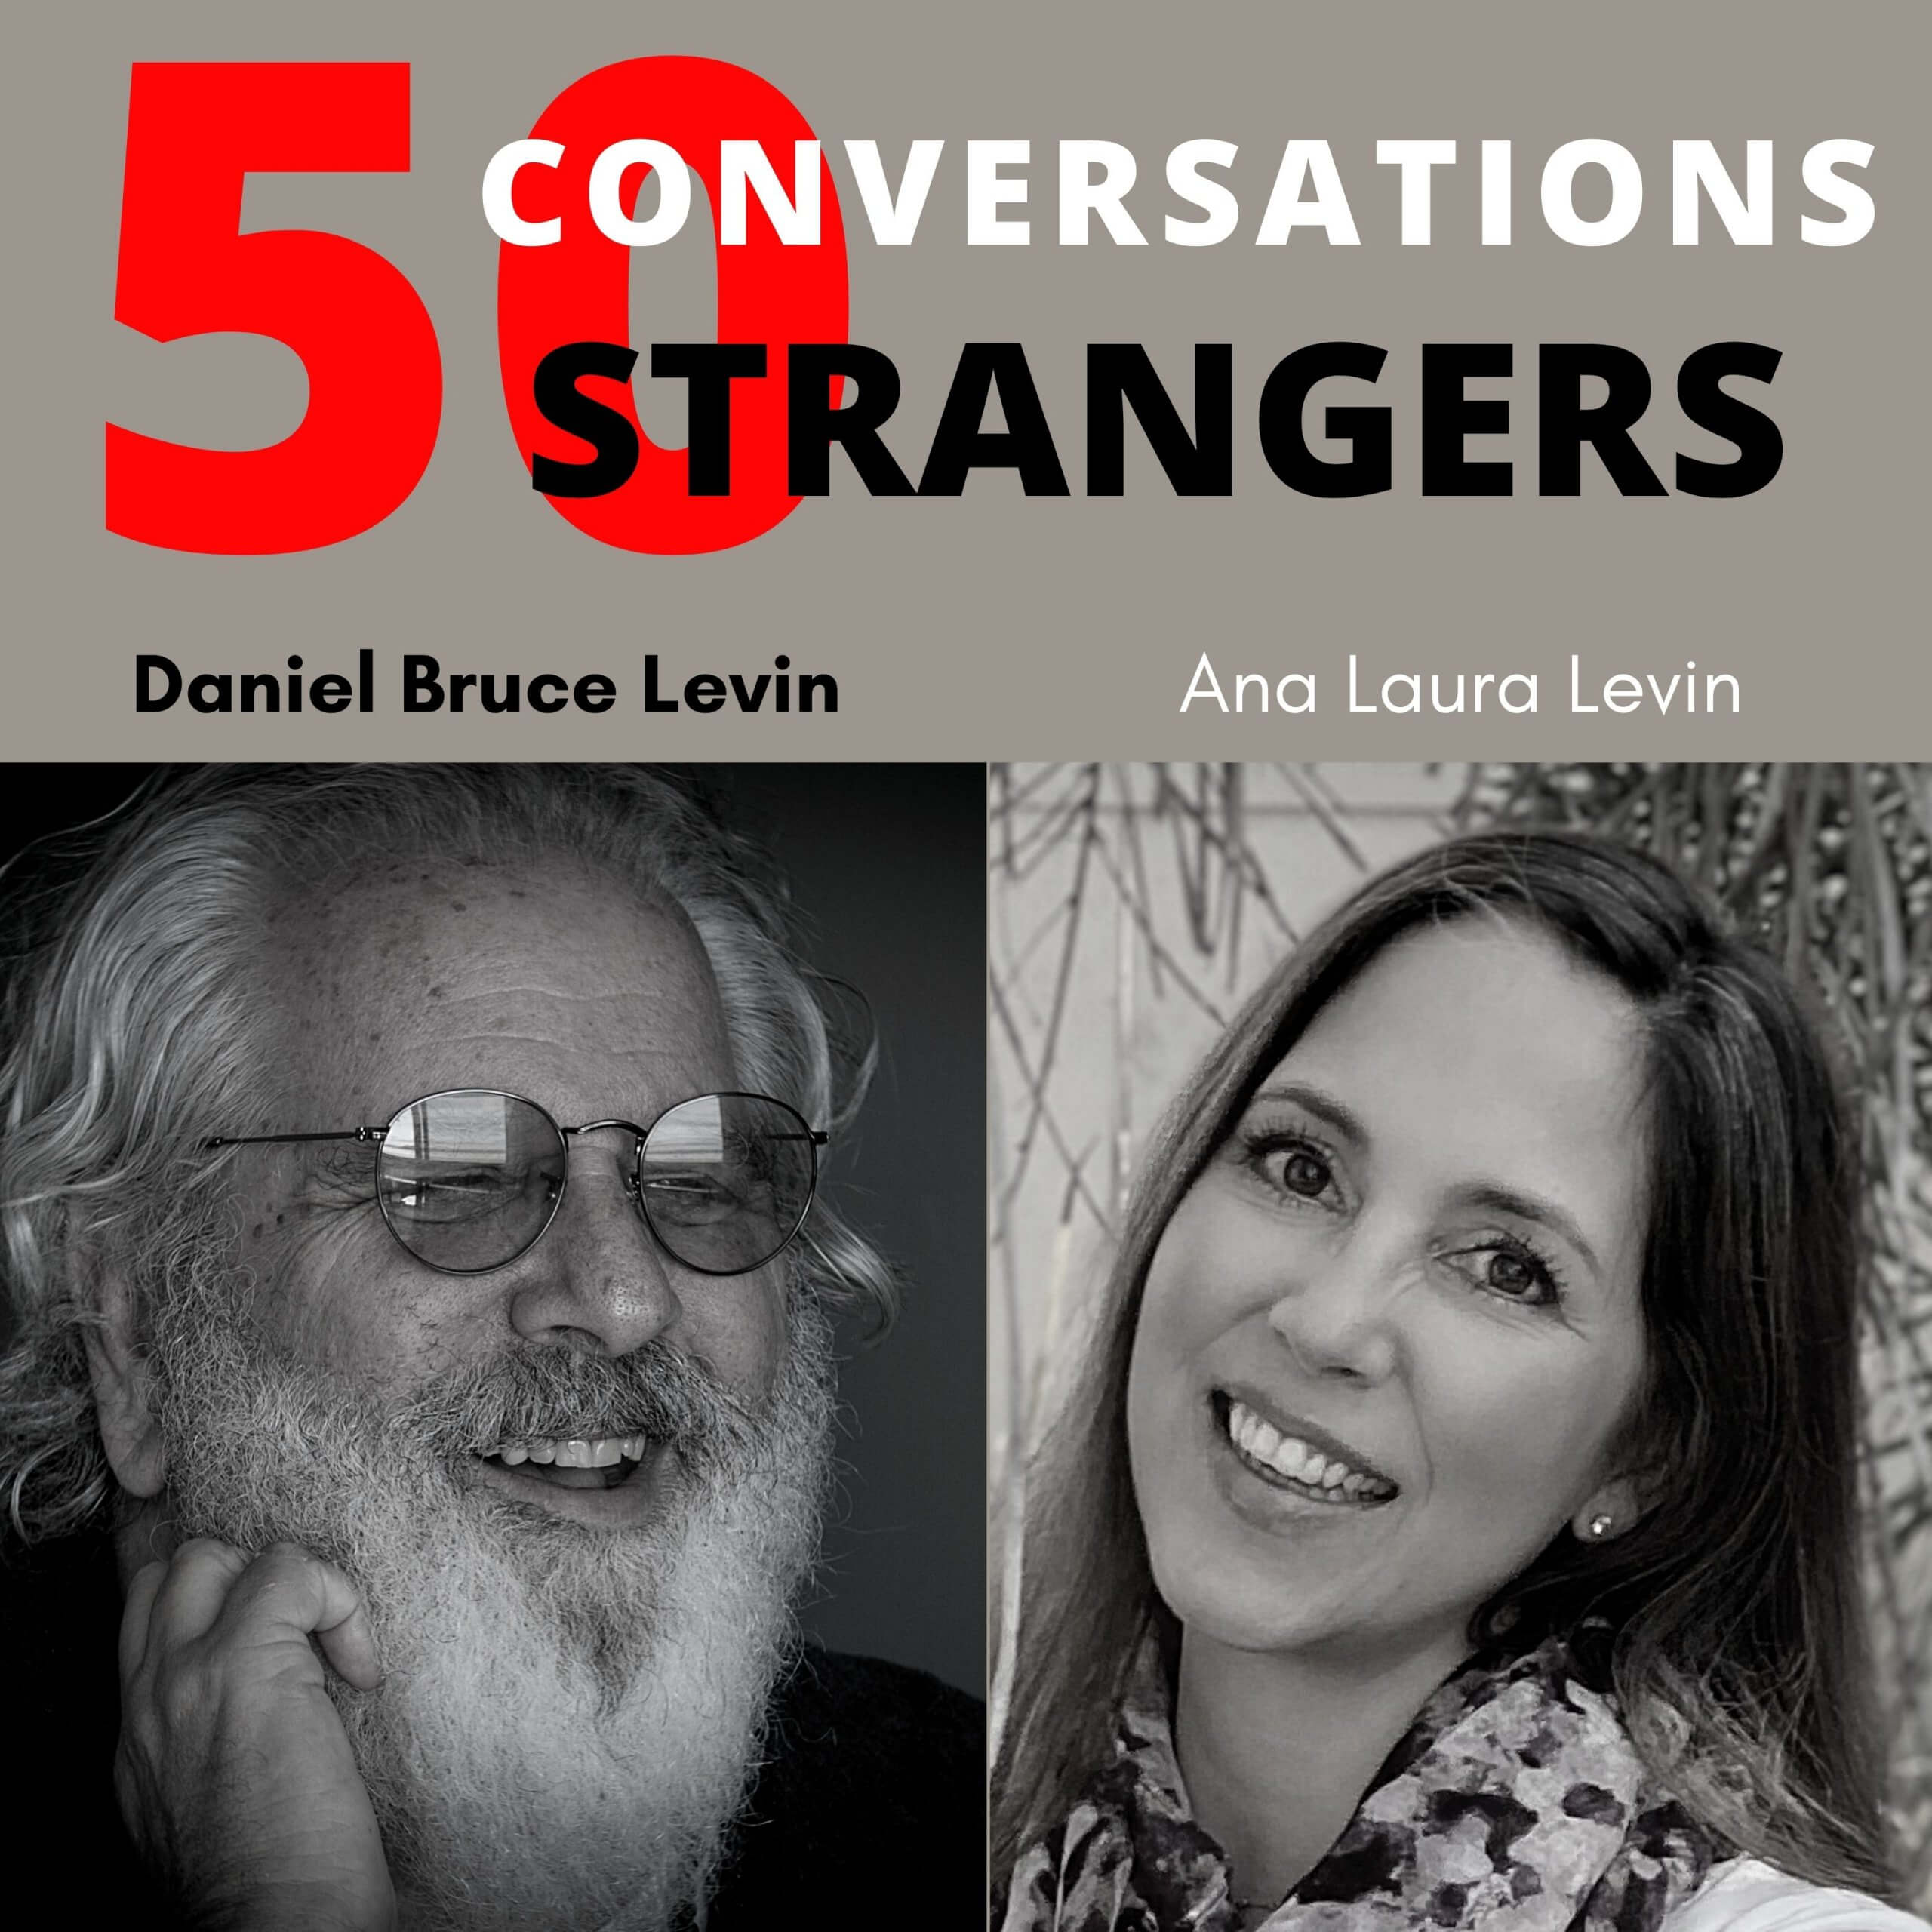 50 Conversations with 50 Strangers with my wife Ana Laura Levin